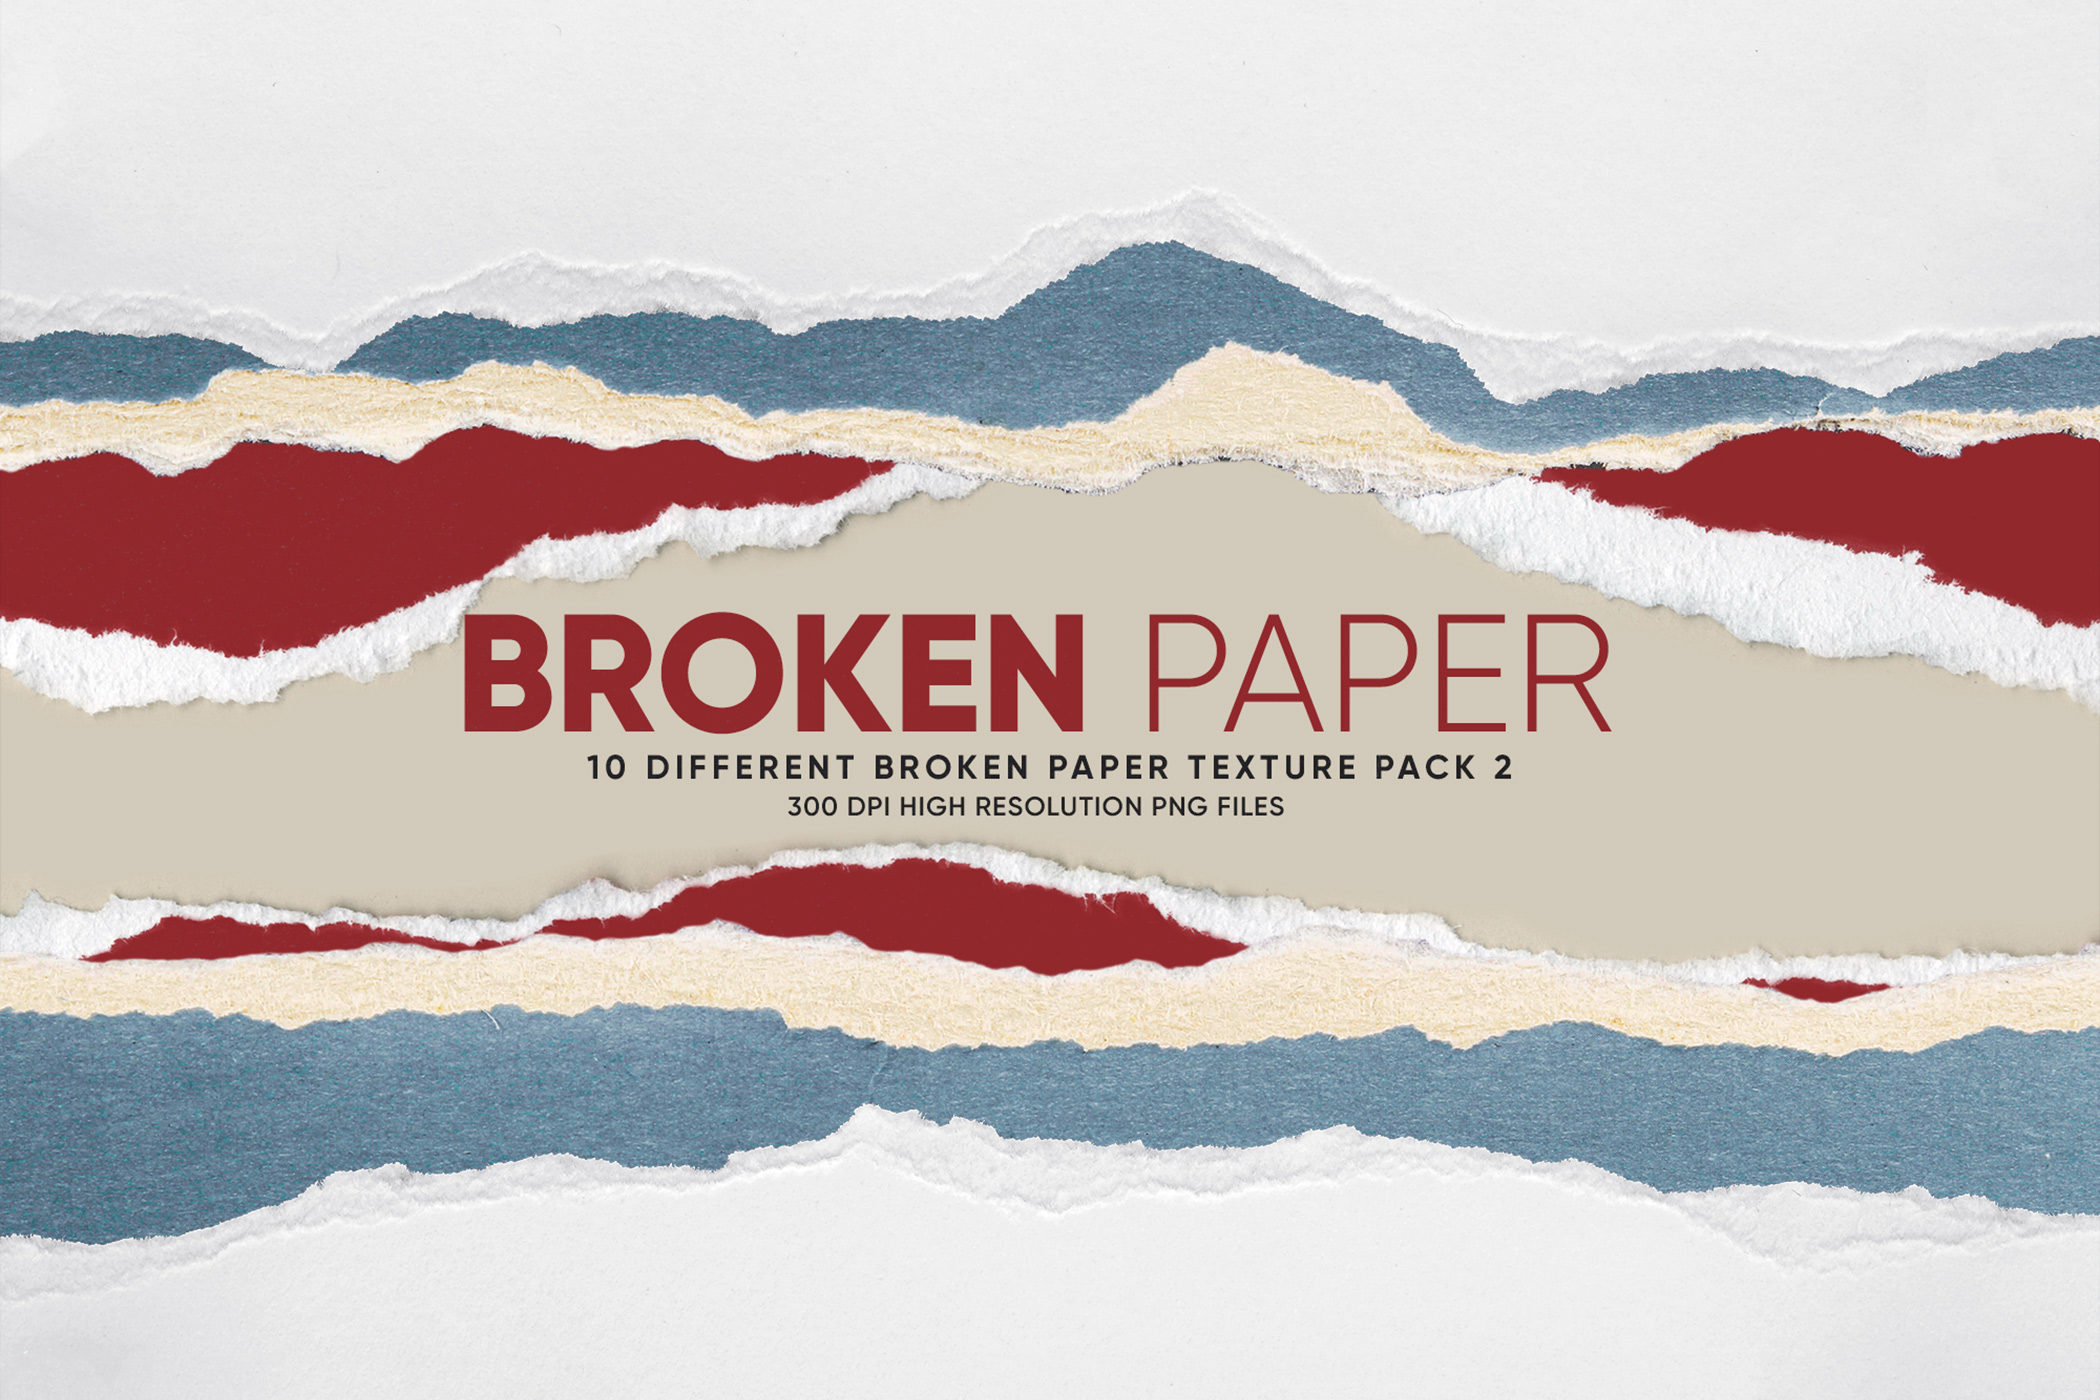 https://nusupply.co/wp-content/uploads/2019/11/broken-paper-pack-4-2100x1400.jpg